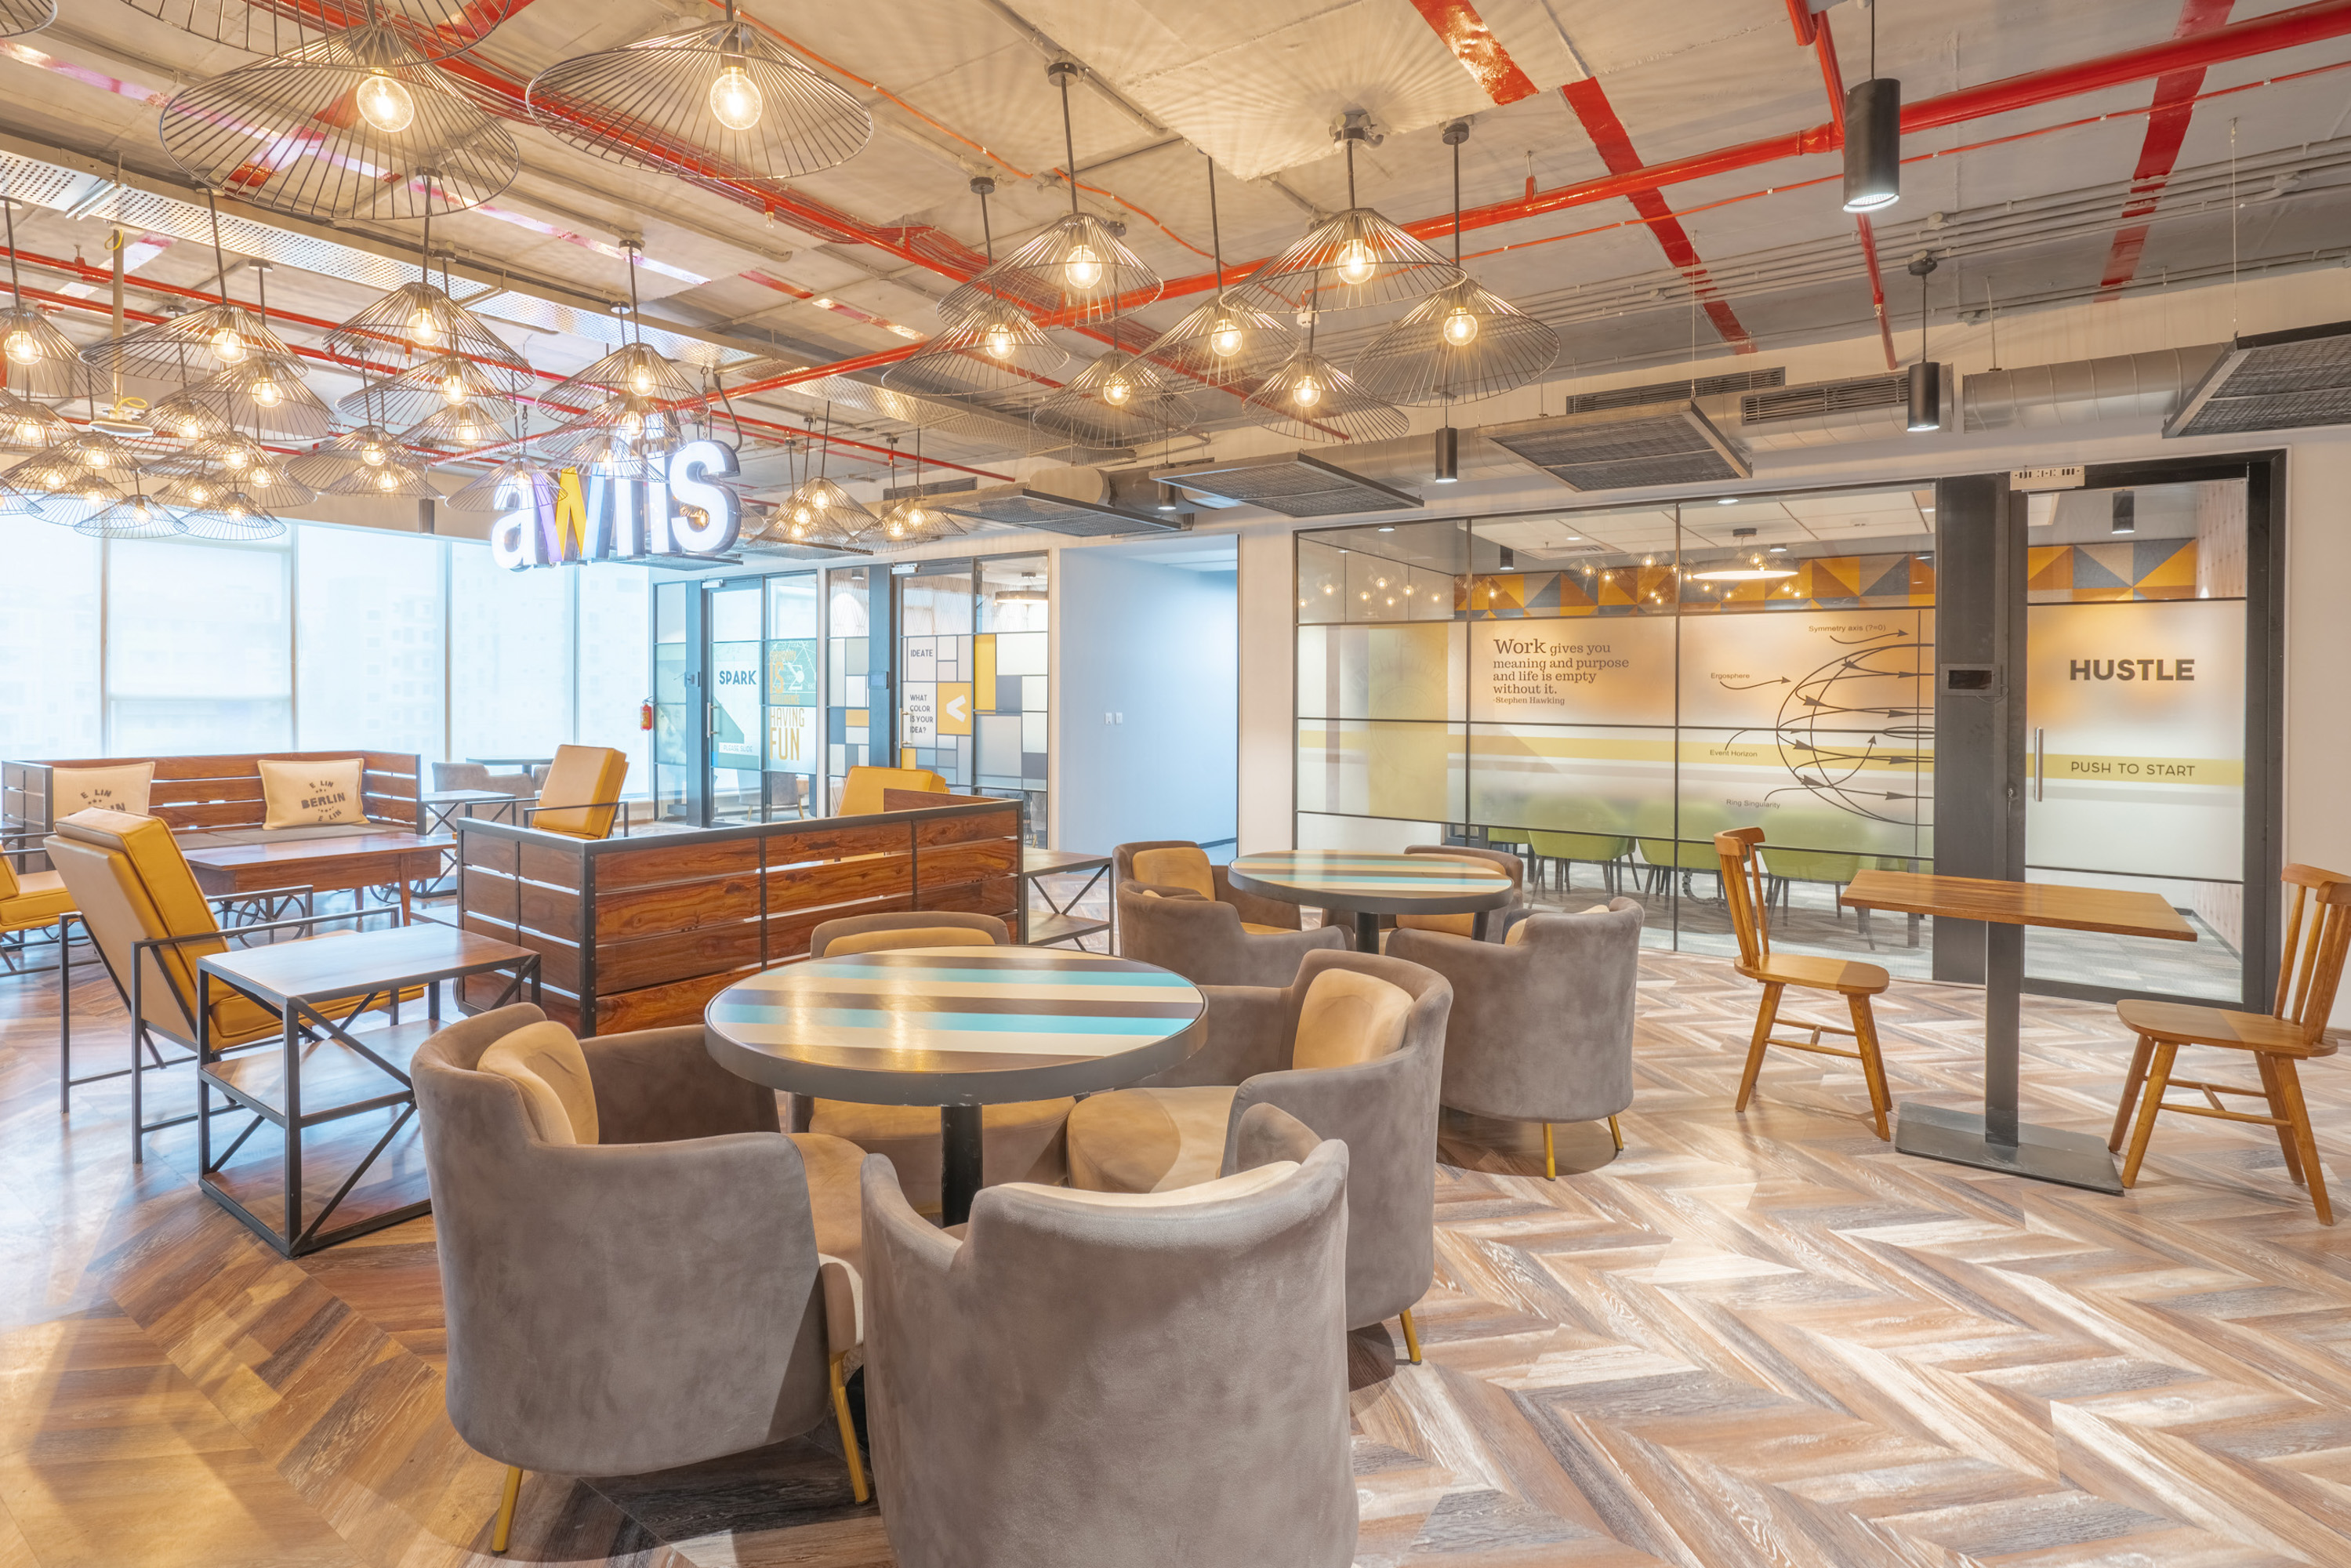 When mid-sized enterprises choose coworking